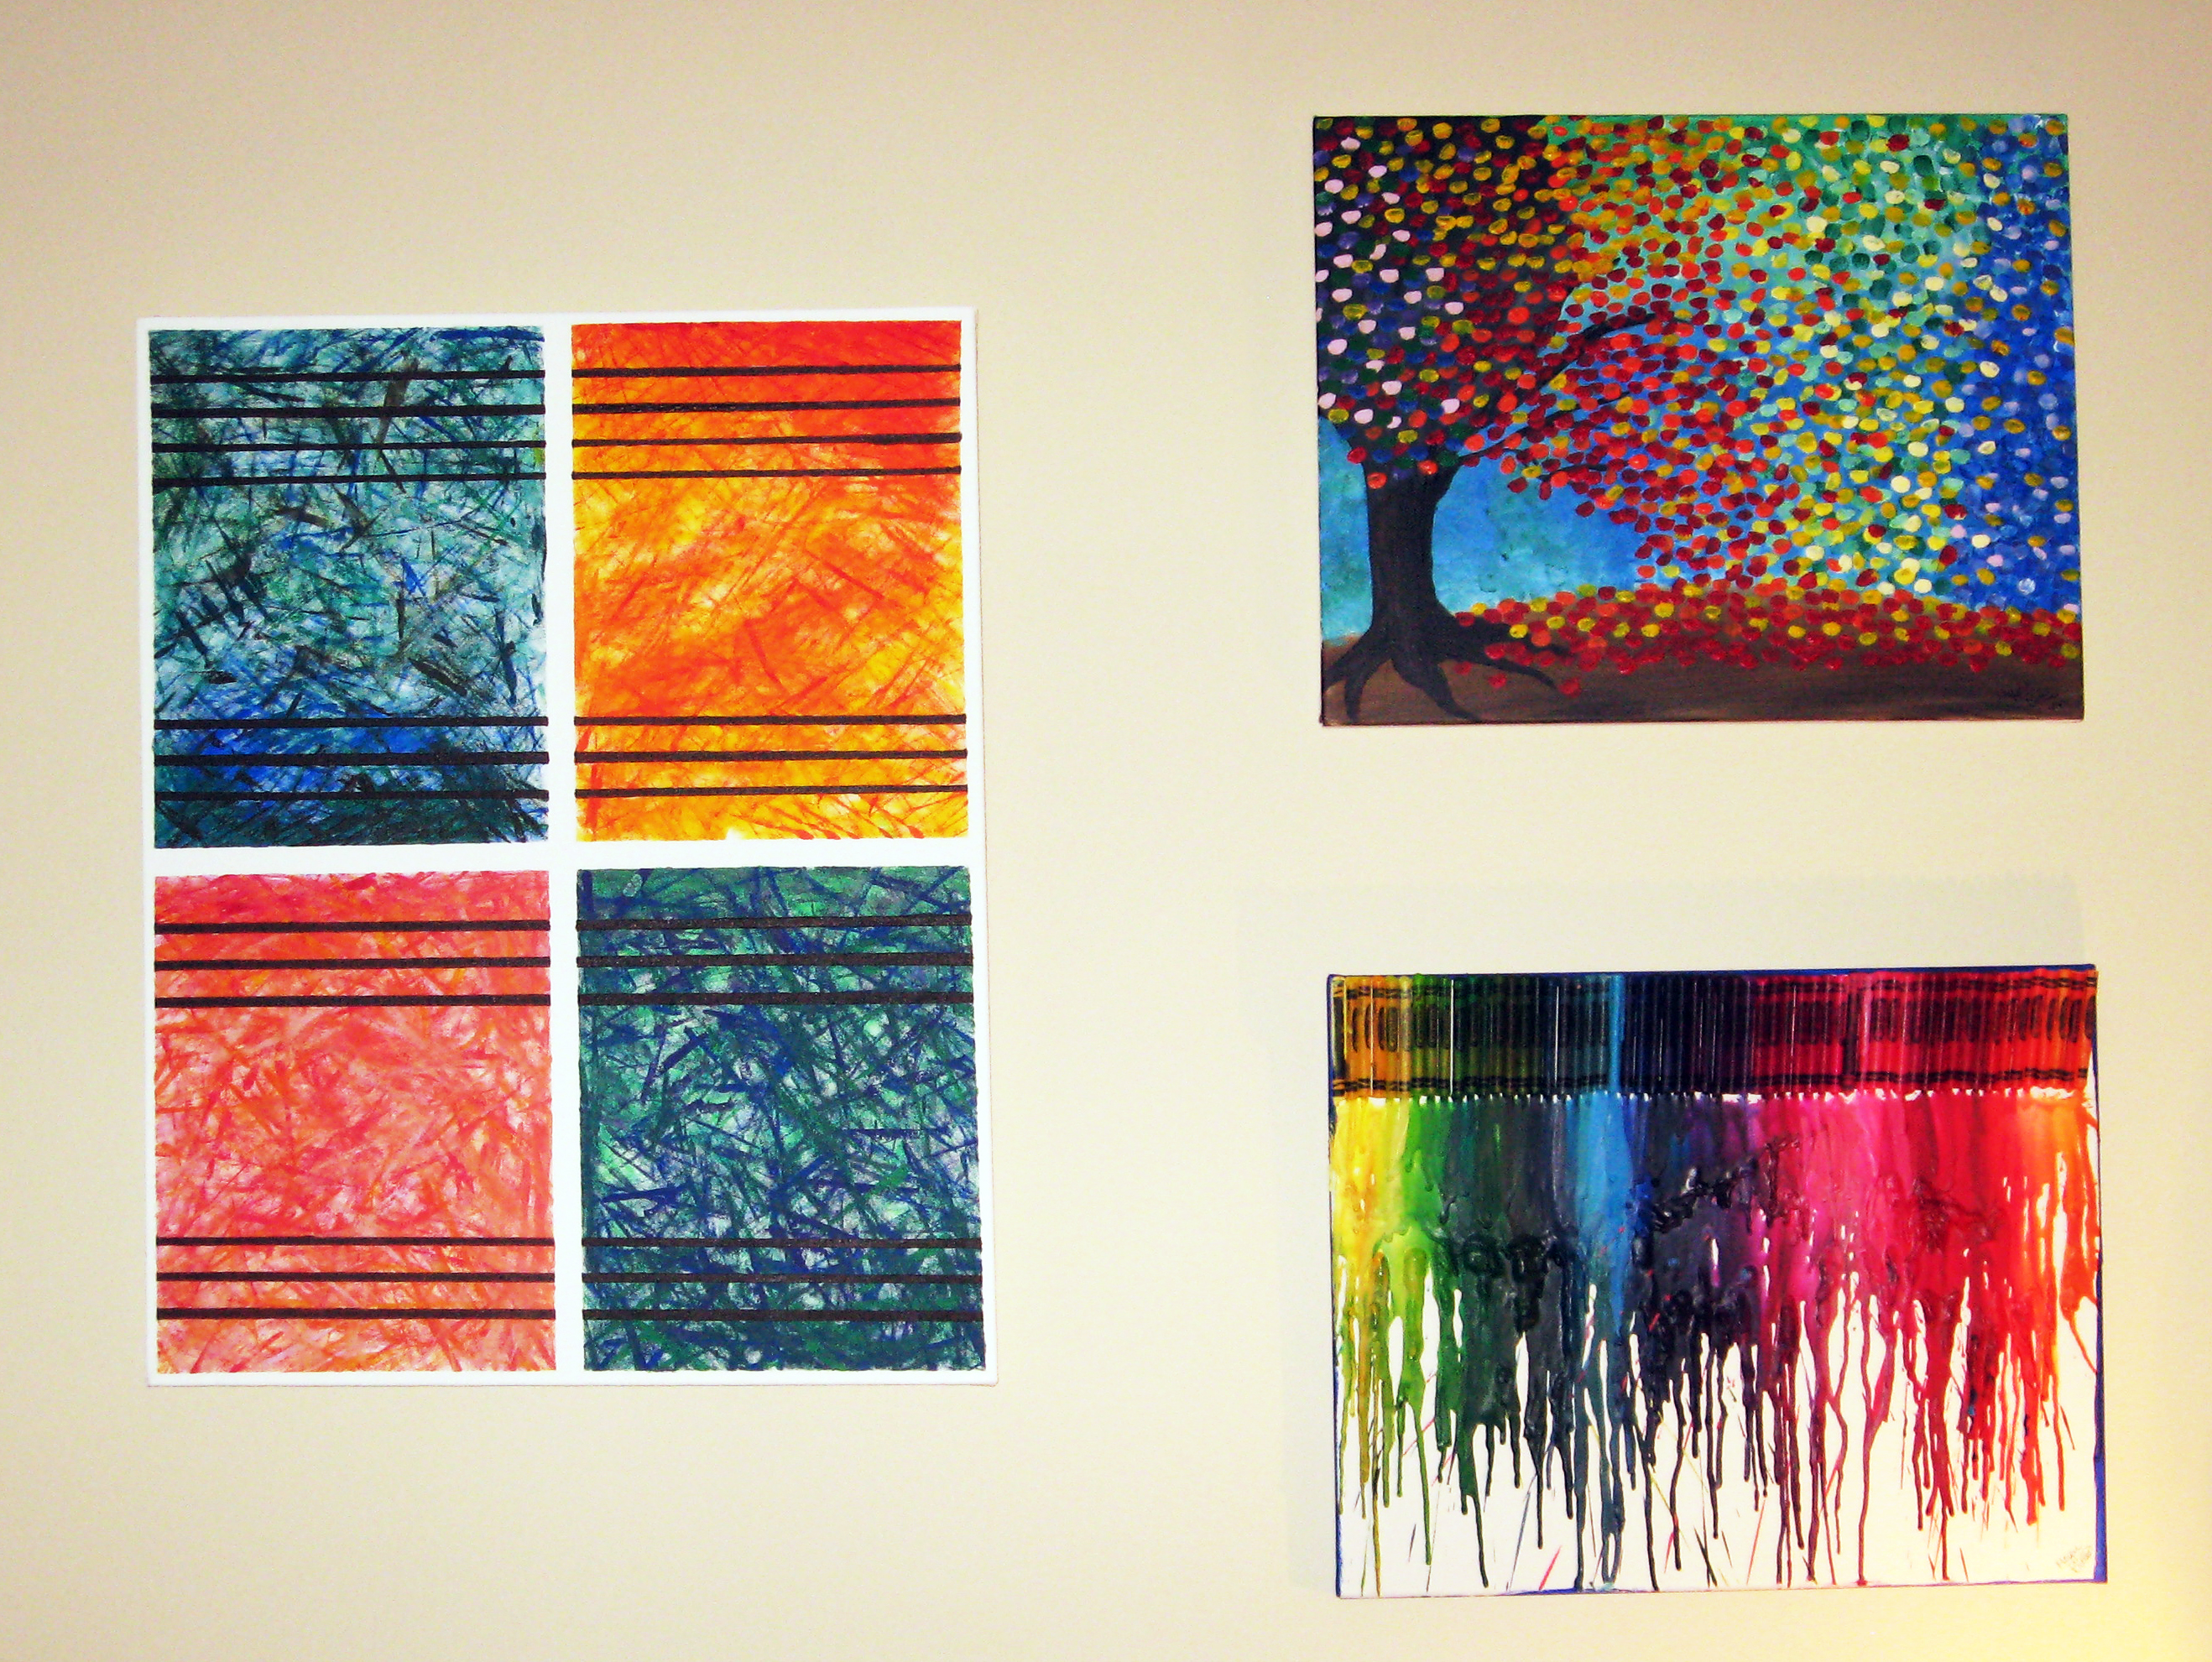 Diy abstract wall art make something mondays for Creating a mural